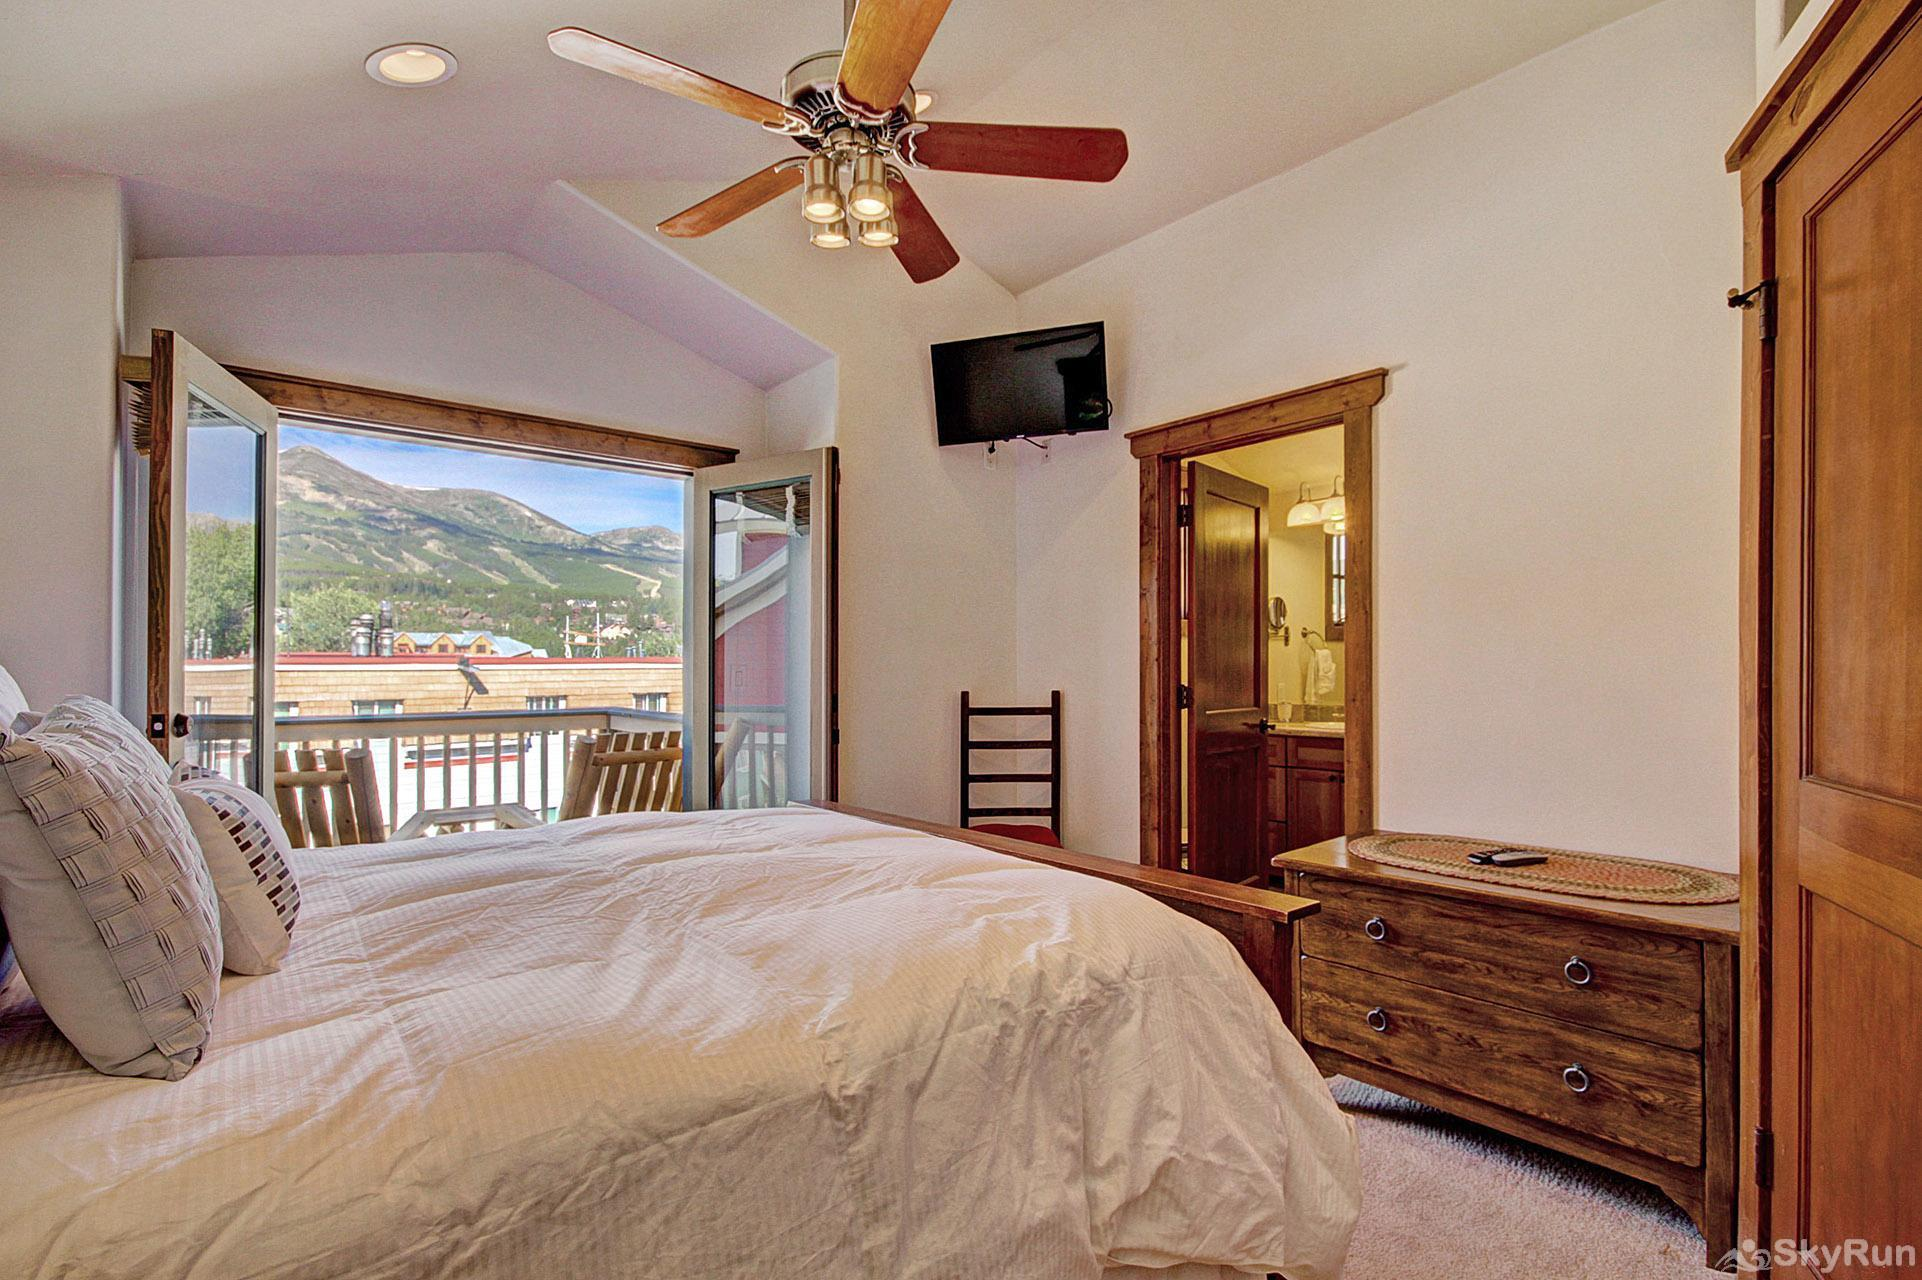 Mountain Ridge Chalet Queen master bedroom with amazing views and ensuite bathroom